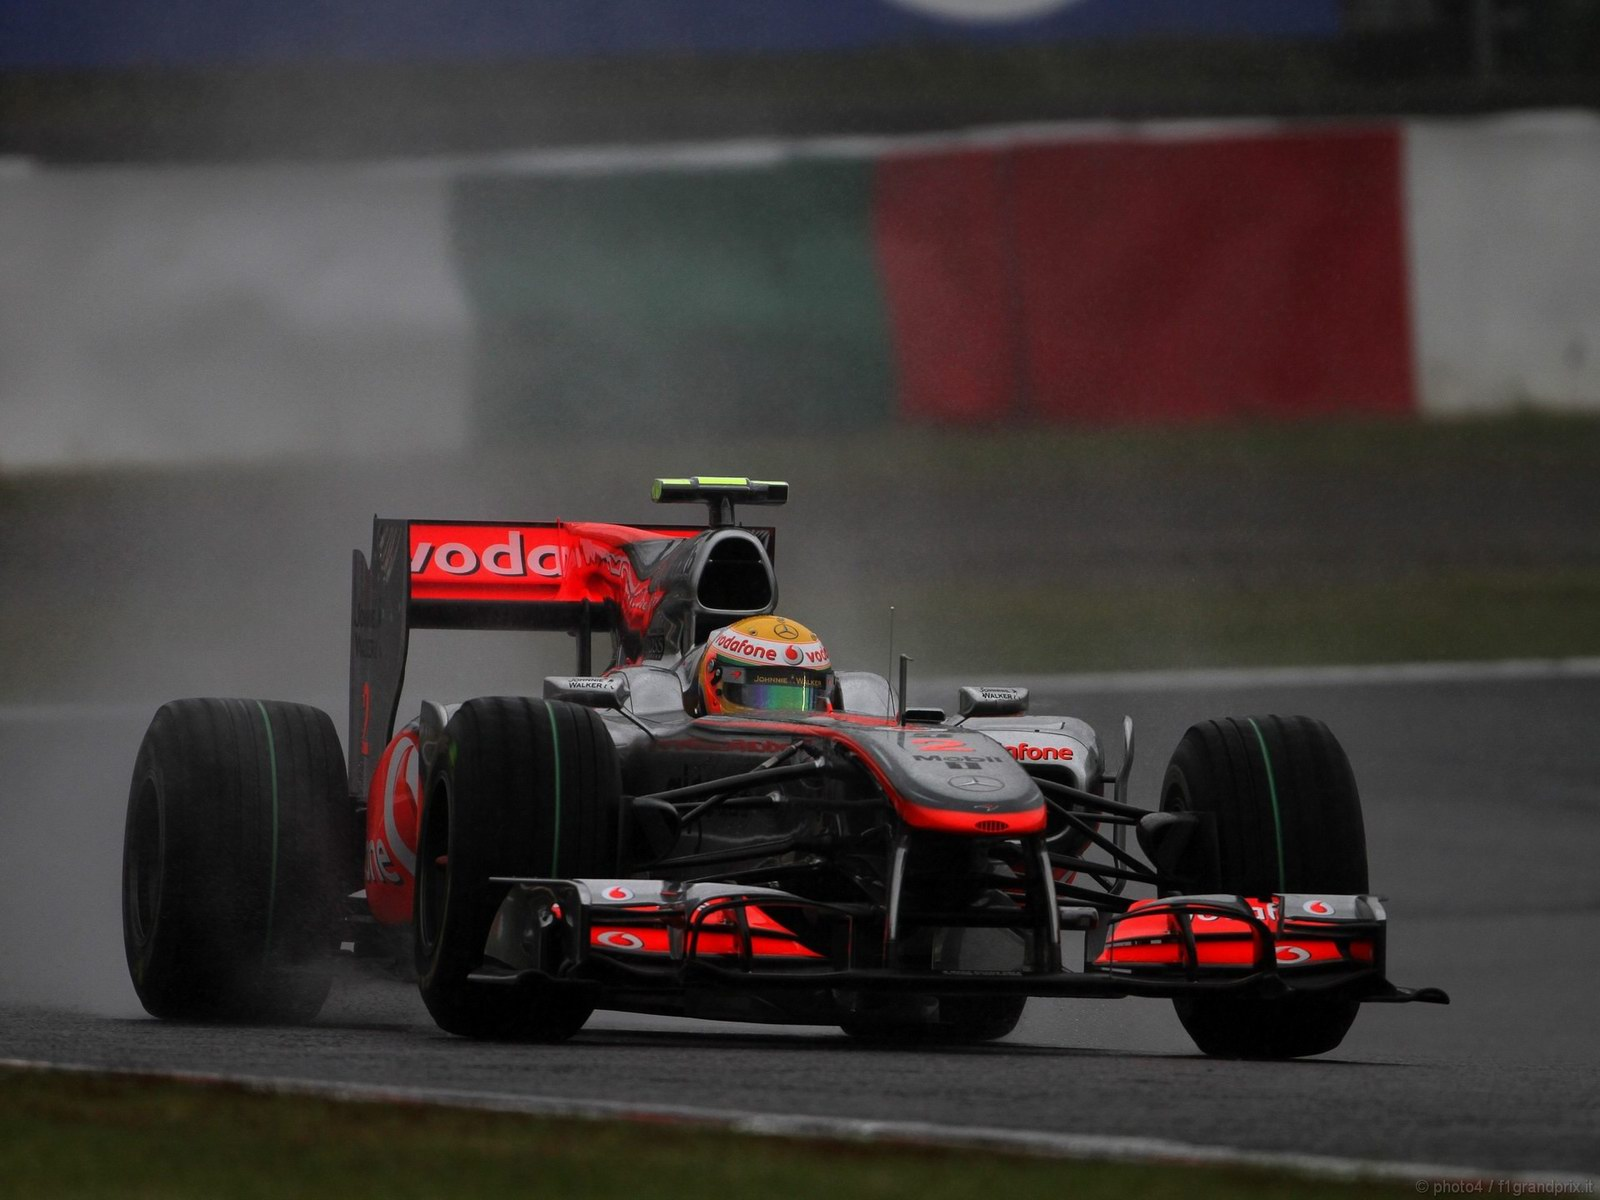 pojazdy - formula1 - gp_giappone_wallpapers_000111